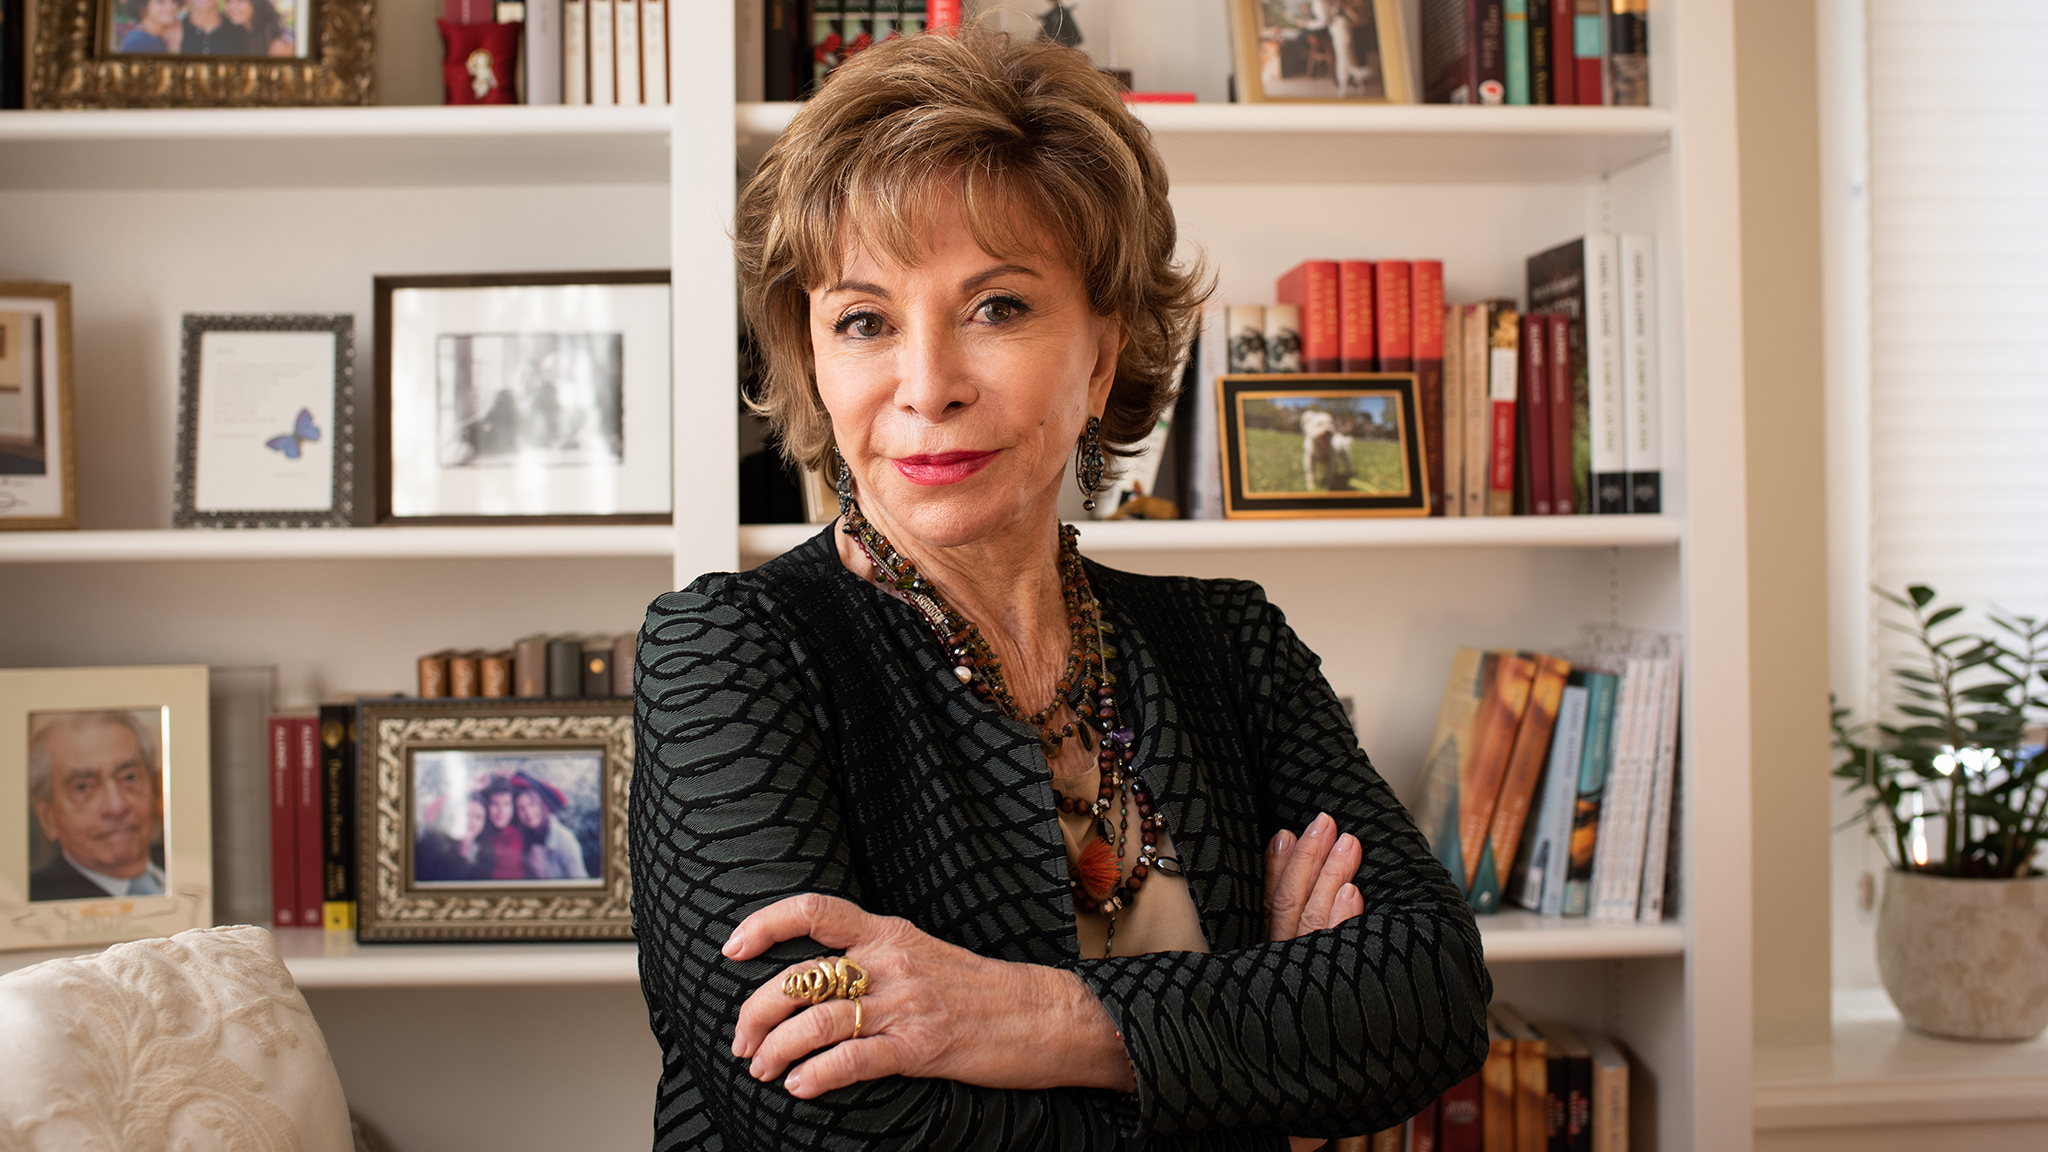 Writer Isabel Allende: 'I wish I still had the innocence I lost in Chile's military coup' | Financial Times